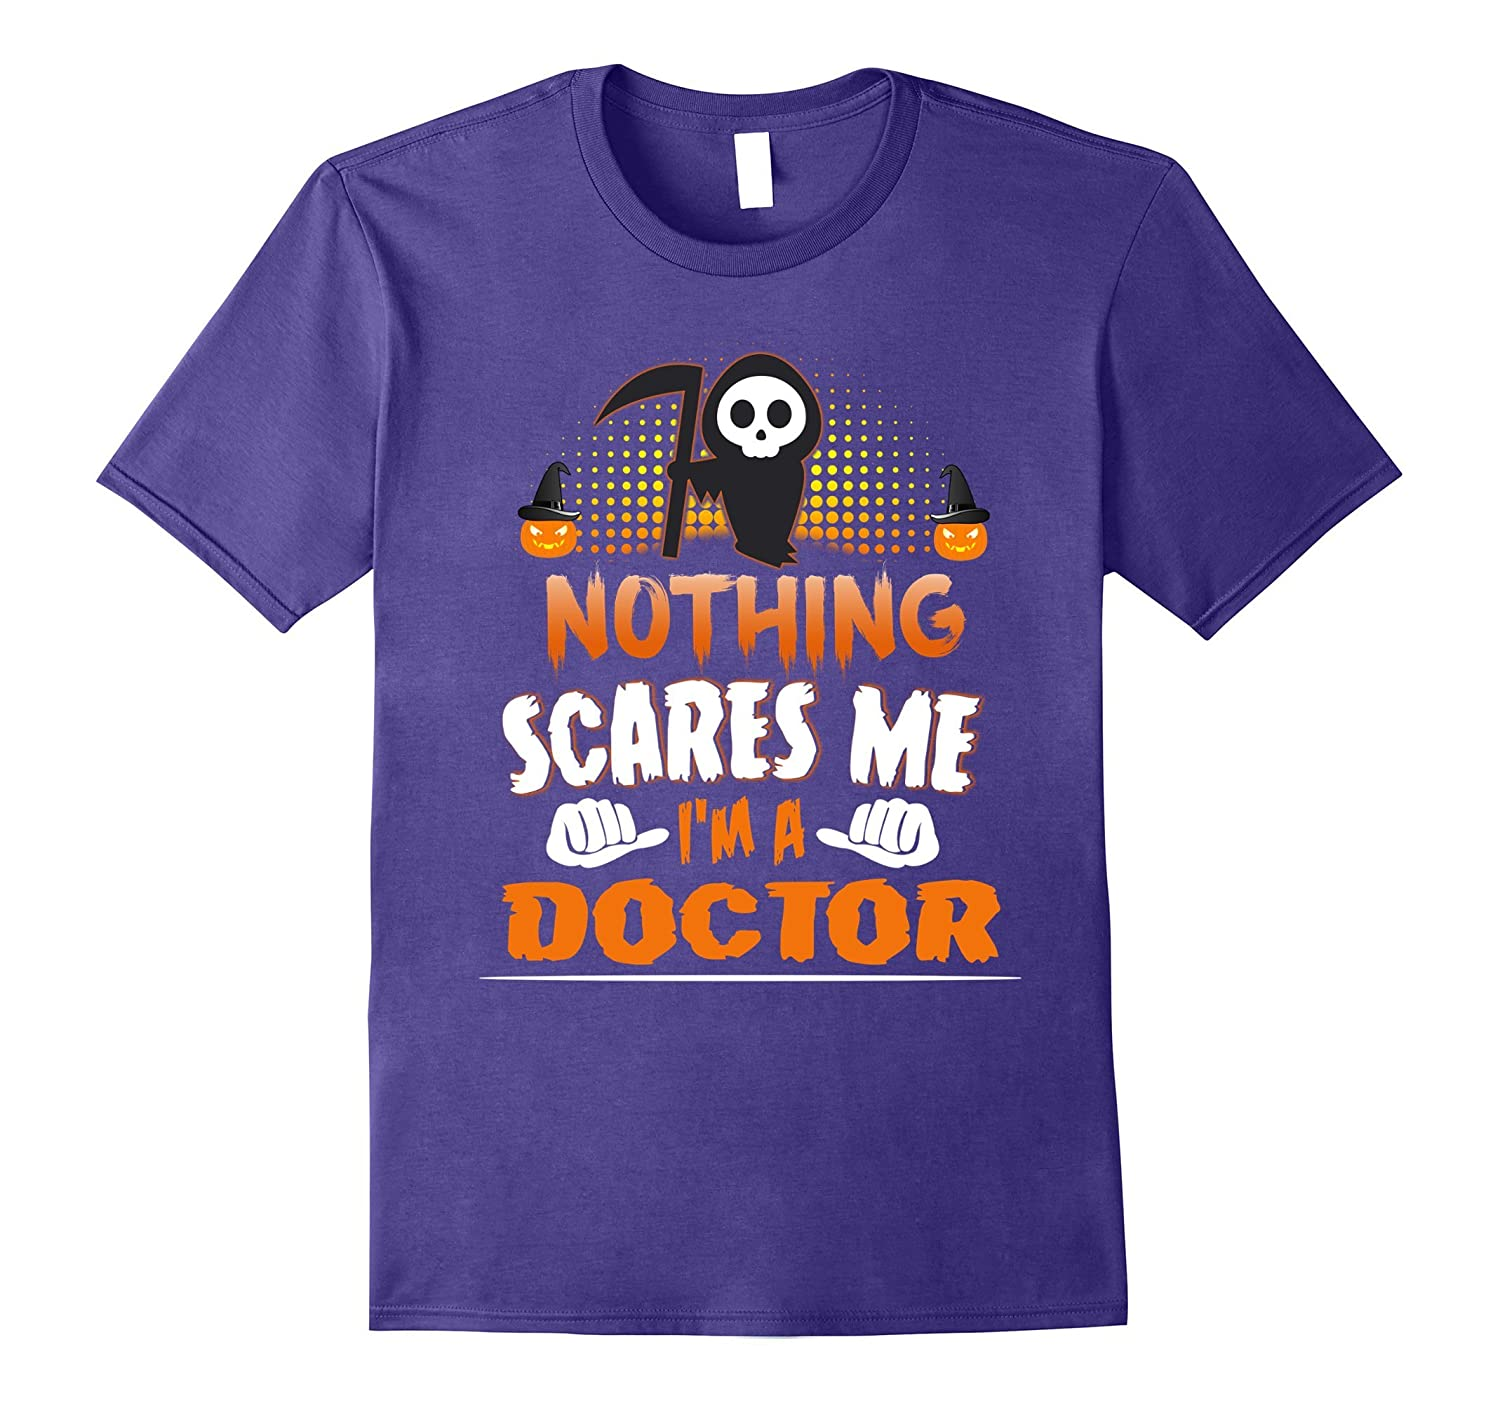 Doctor - Nothing Scares Me Halloween Job Funny Tee Shirt-TJ